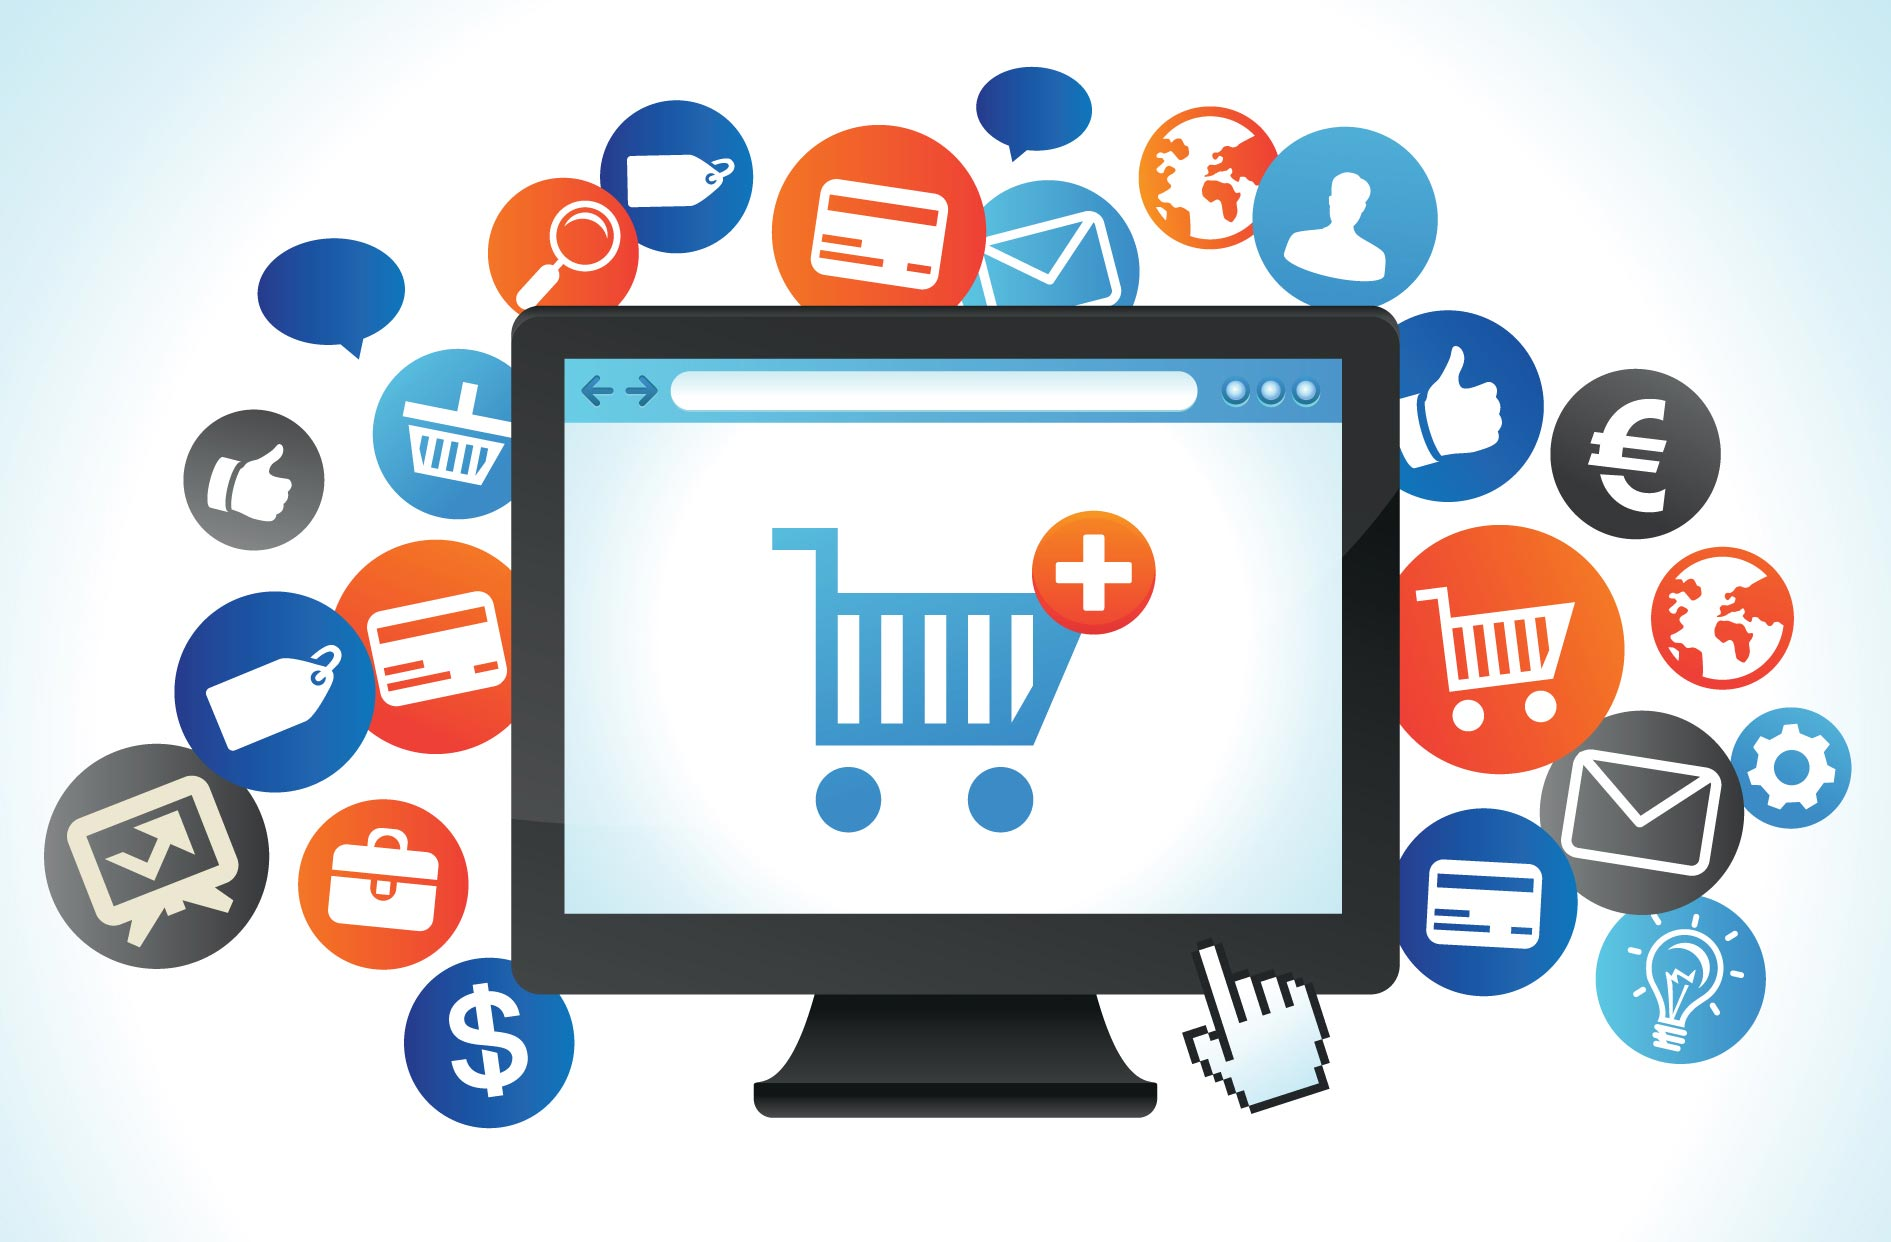 plataforma ecommerce checkl list